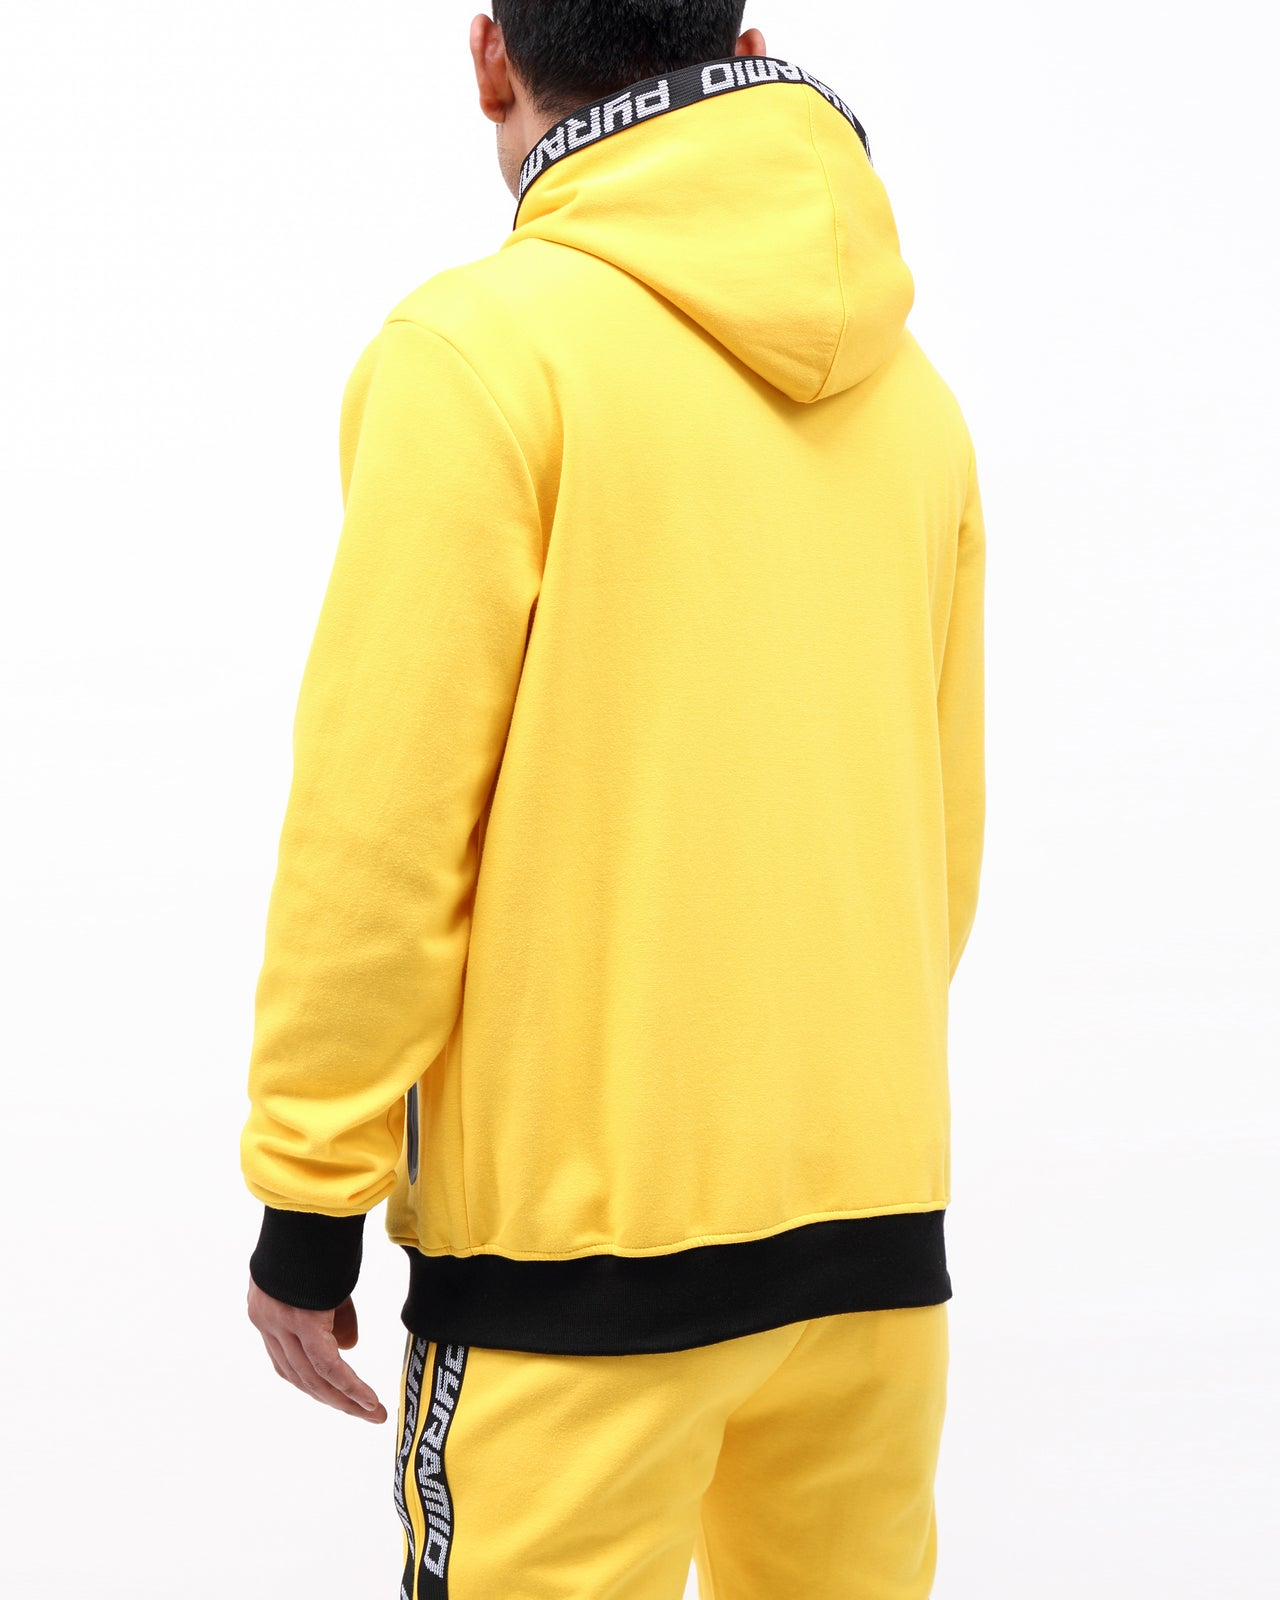 PYRAMID TECH ZIP UP HOODY - Color: Yellow